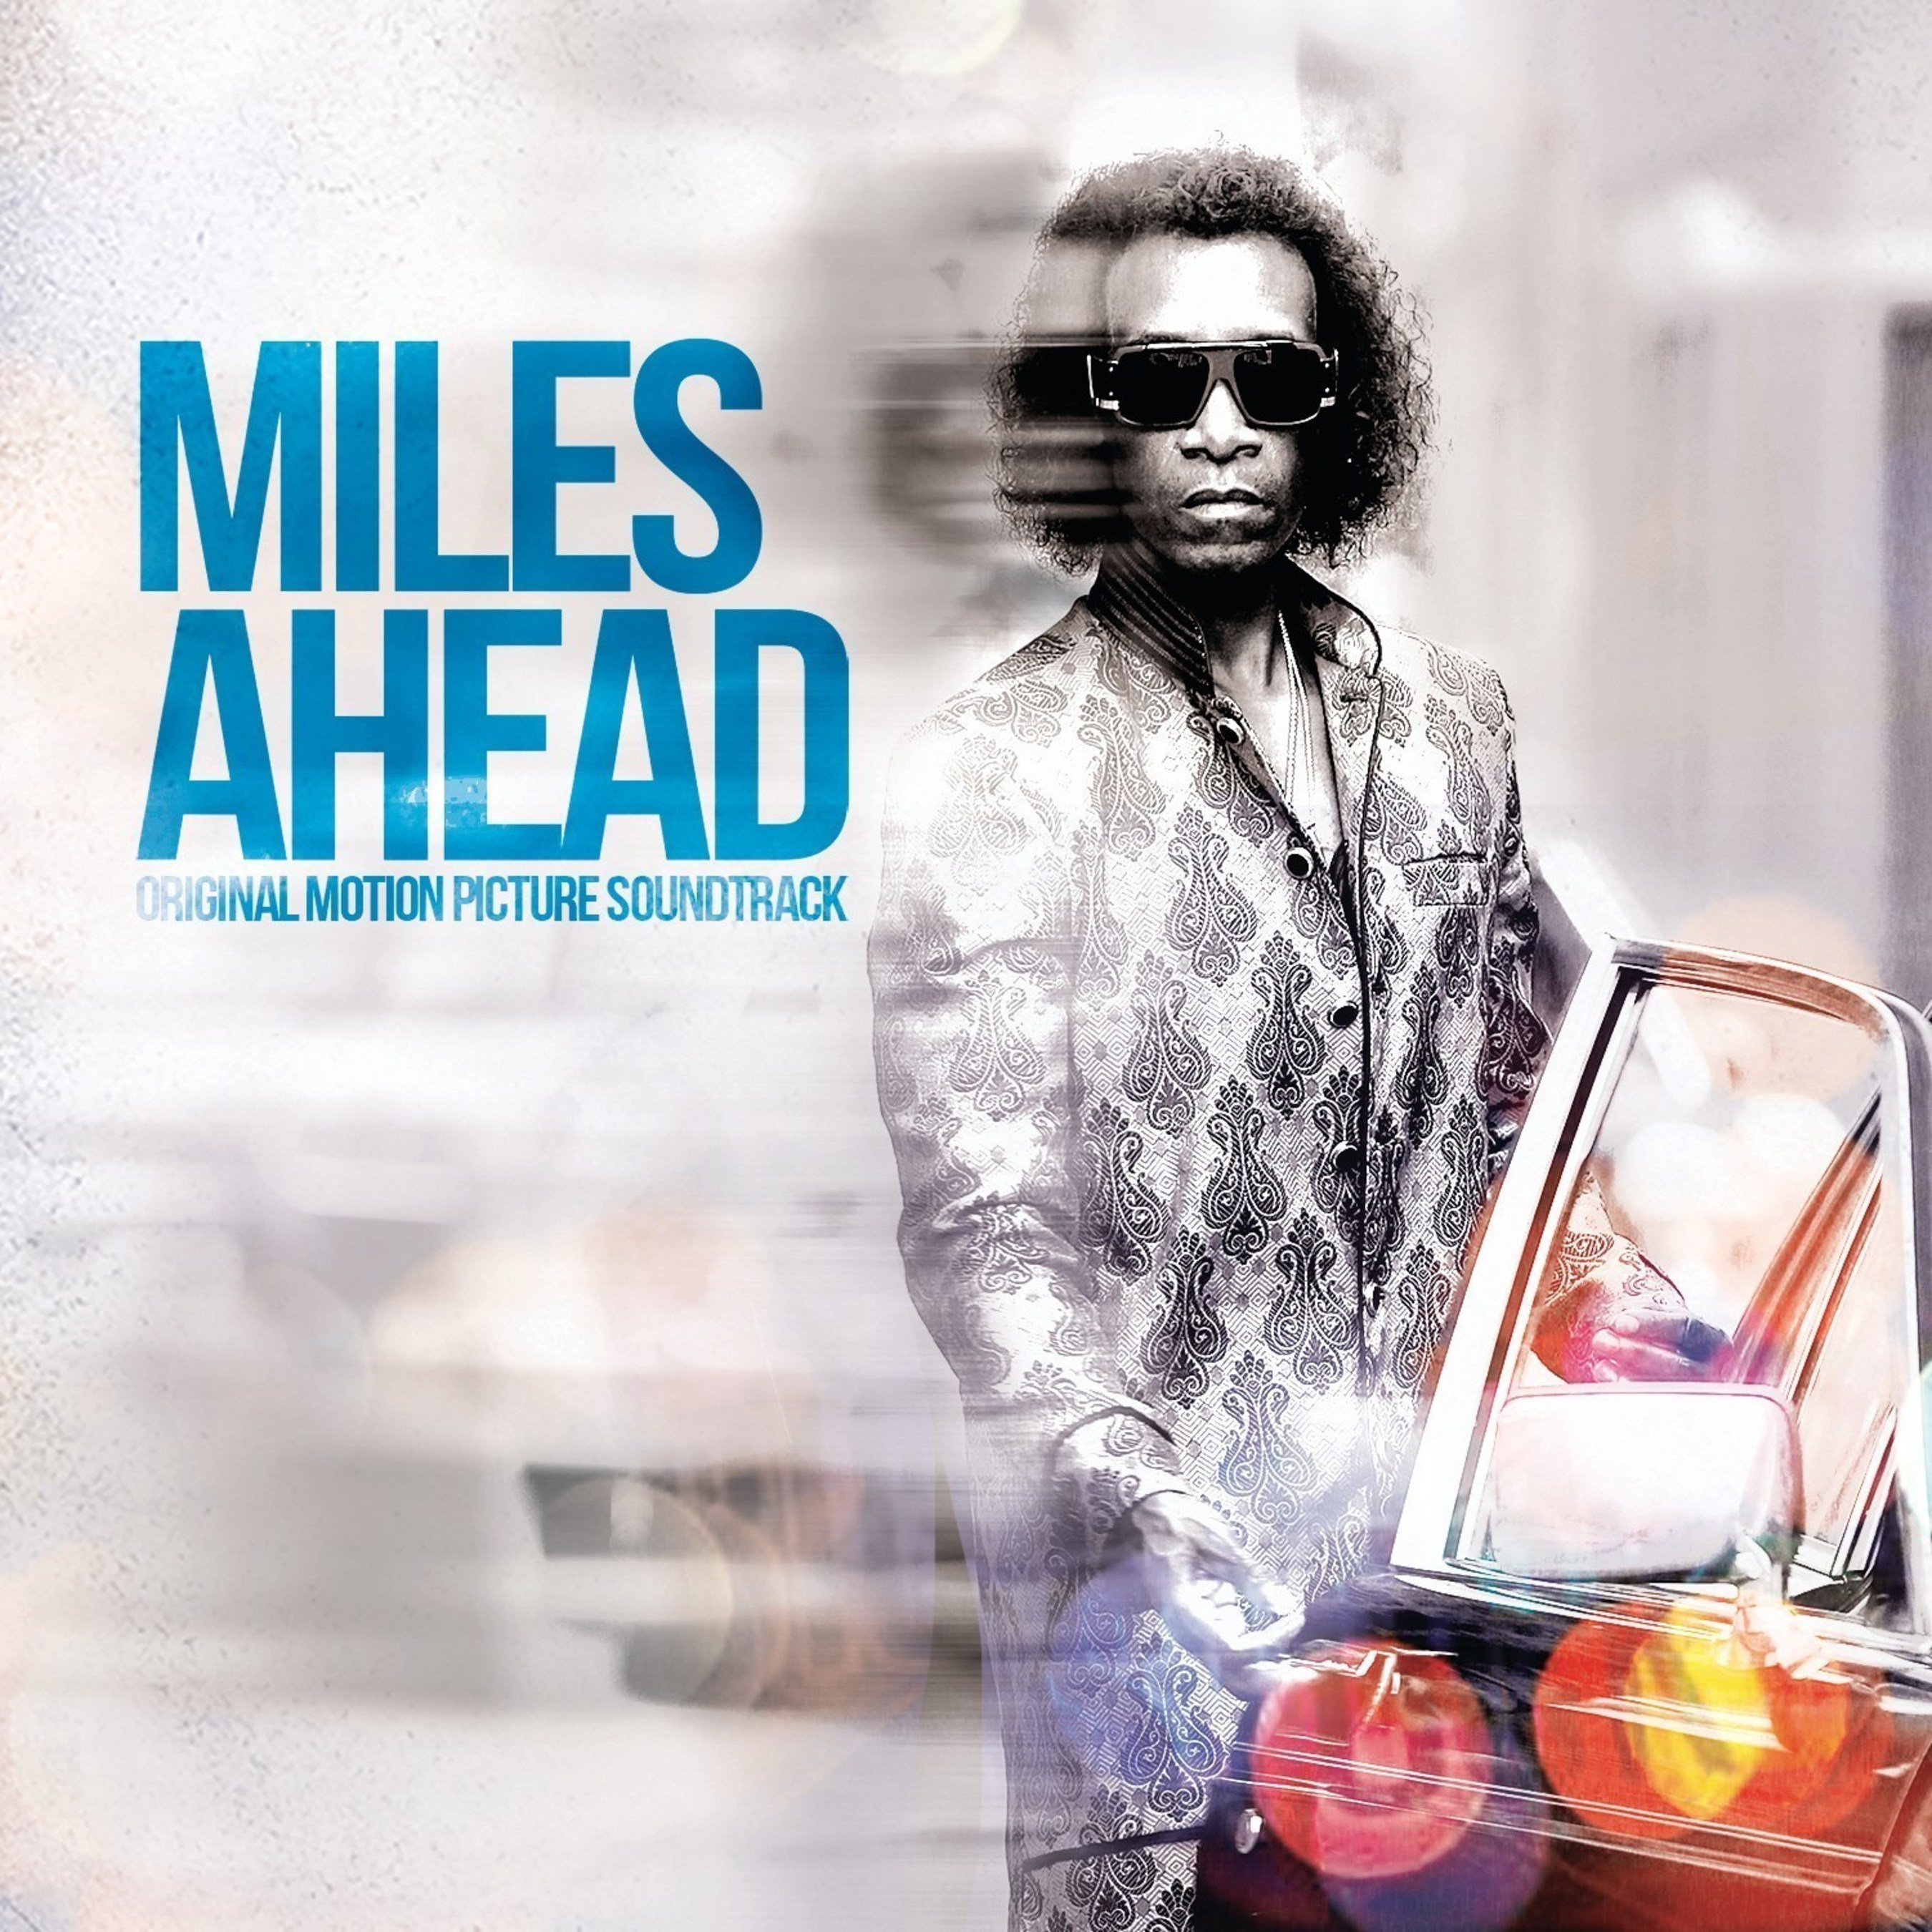 """MILES AHEAD - Original Motion Picture Soundtrack will be available Friday, April 1. A cinematic exploration of the life and music of Miles Davis, the movie feature """"MILES AHEAD"""" marks the directorial debut of Don Cheadle, who co-wrote the screenplay (with Steven Baigelman) and stars as the legendary musician in the film."""